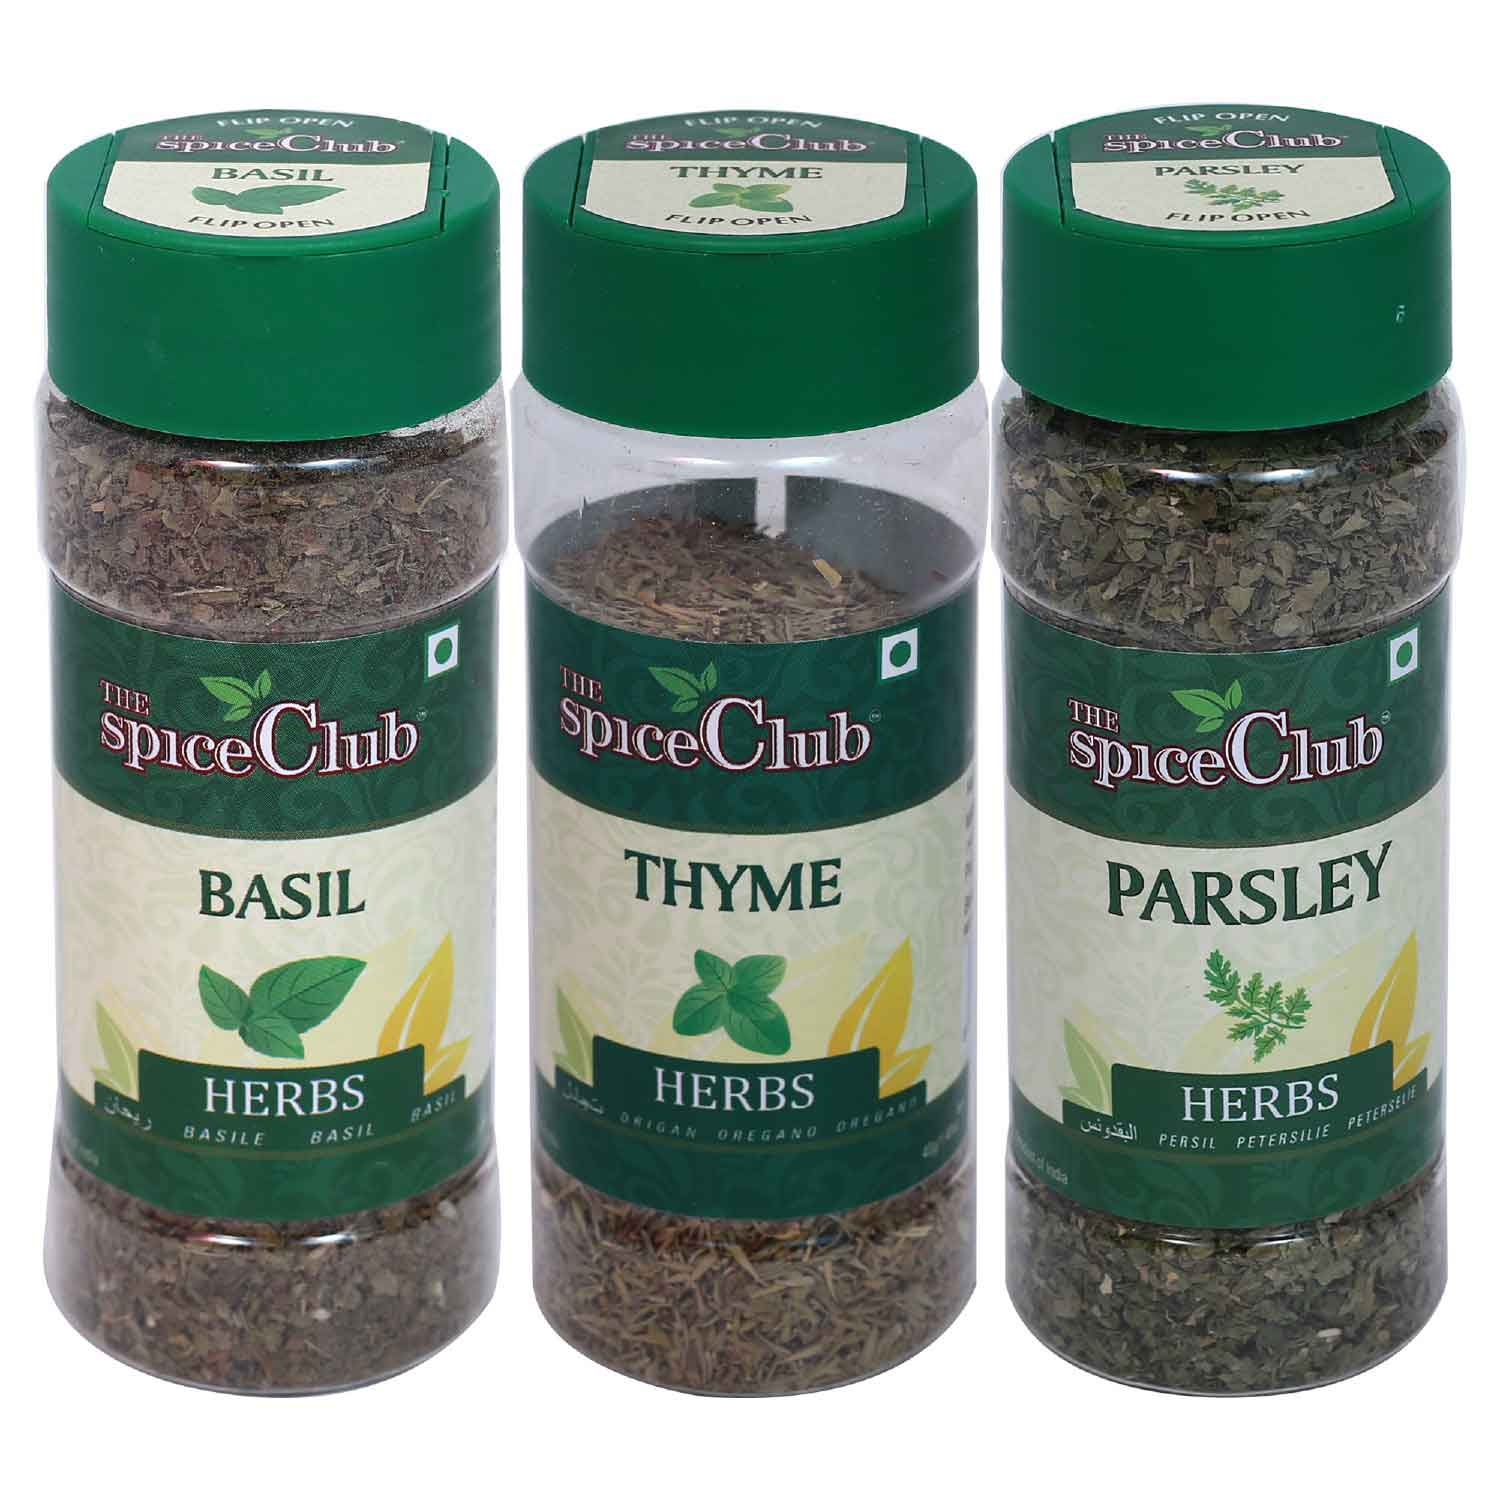 Basil 20gm Pet Jar + Thyme 25 gm Pet Jar + Parsley 20gm Pet Jar